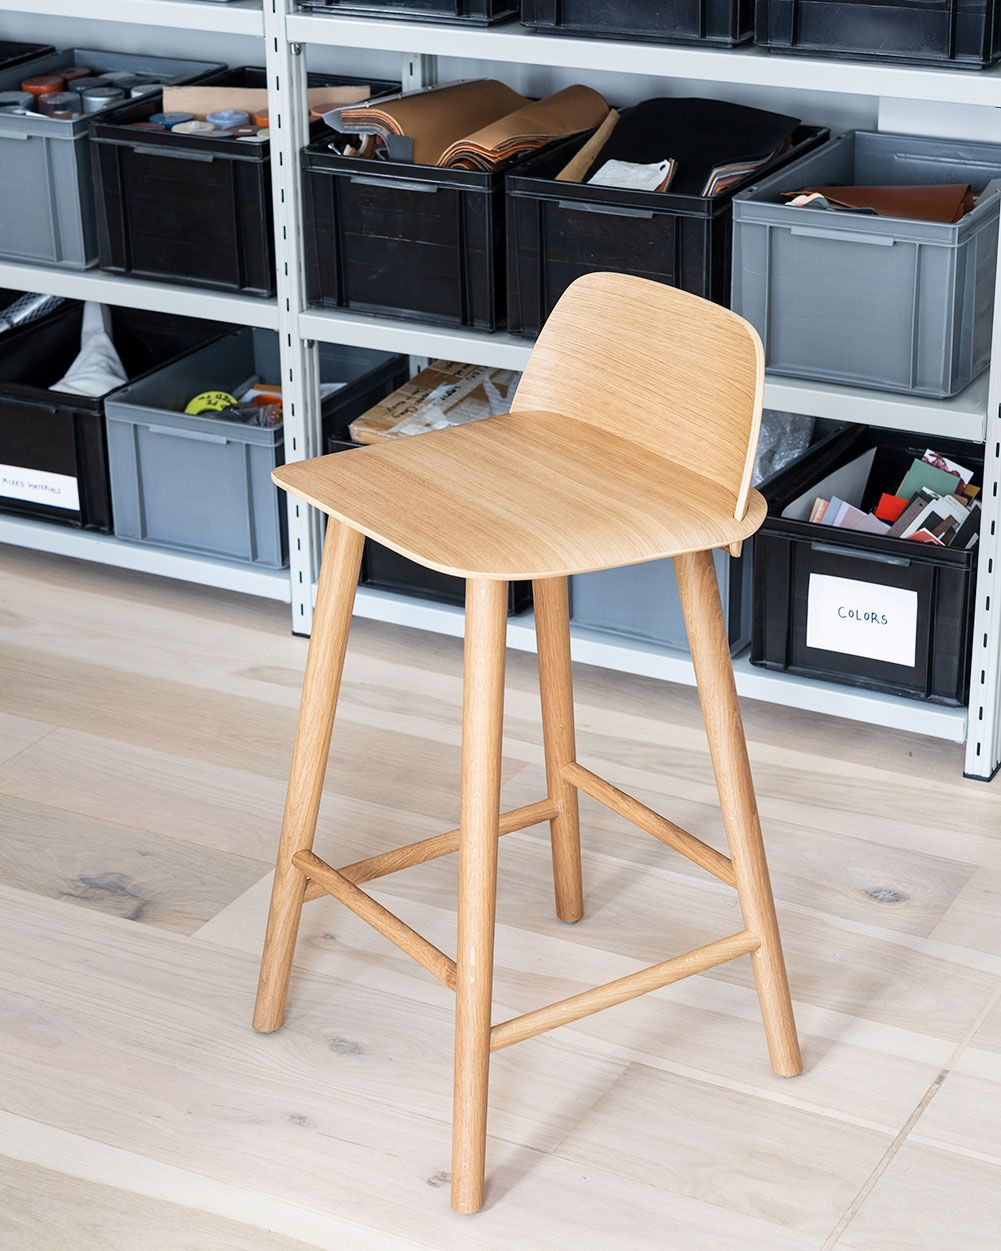 The Nerd Counter Bar Stool Is Designed With A Playfully Contemporary Expressio In 2020 Scandinavian Furniture Design Dining Room Decor Modern Dining Room Inspiration